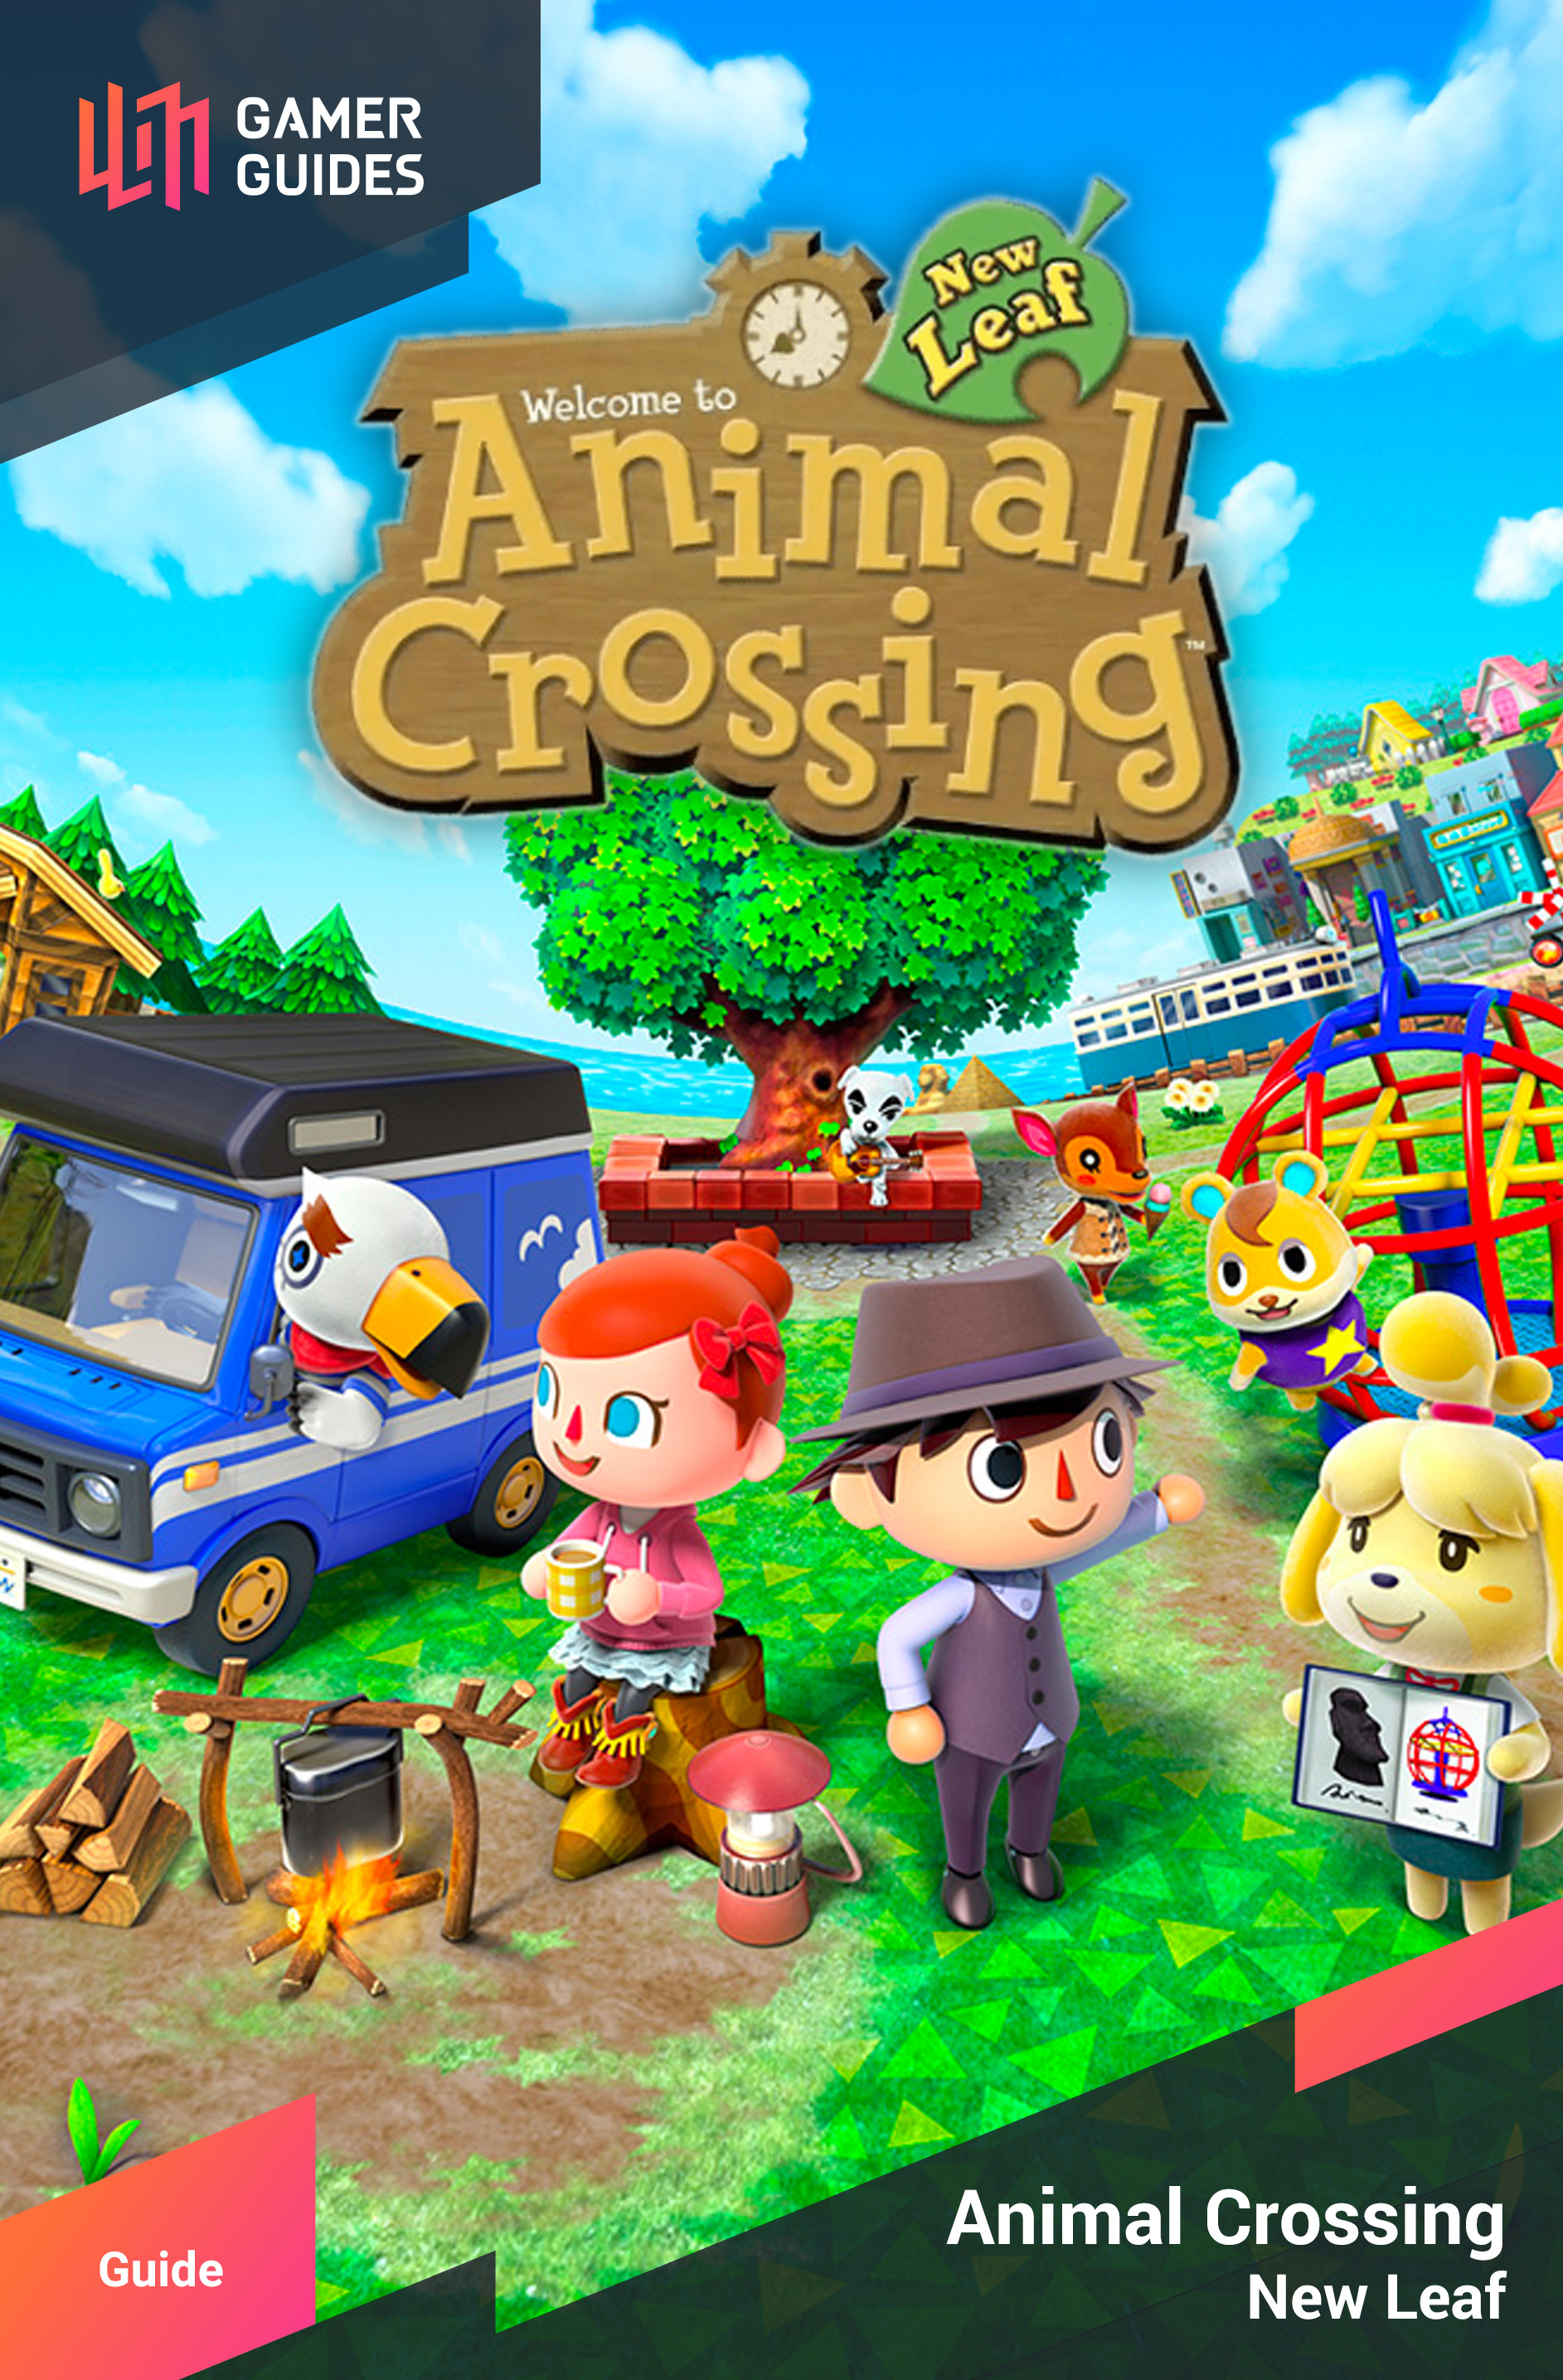 Animal Crossing New Leaf Gamer Guides